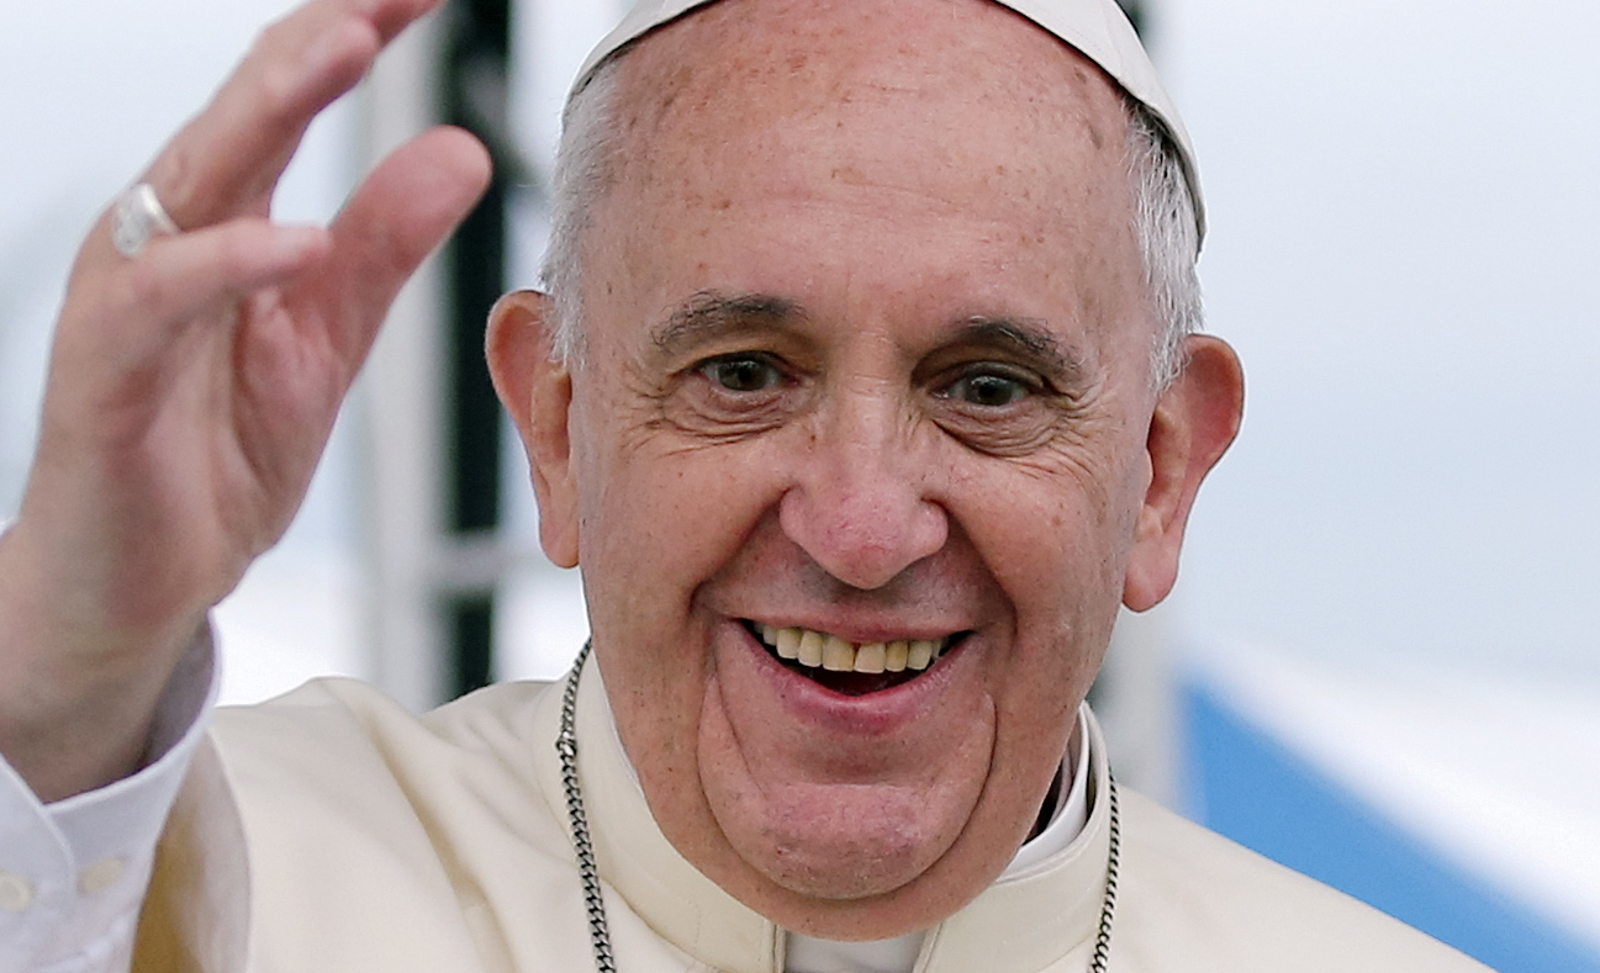 Pope Francis On How Compassion for Animals Can Help the Environment